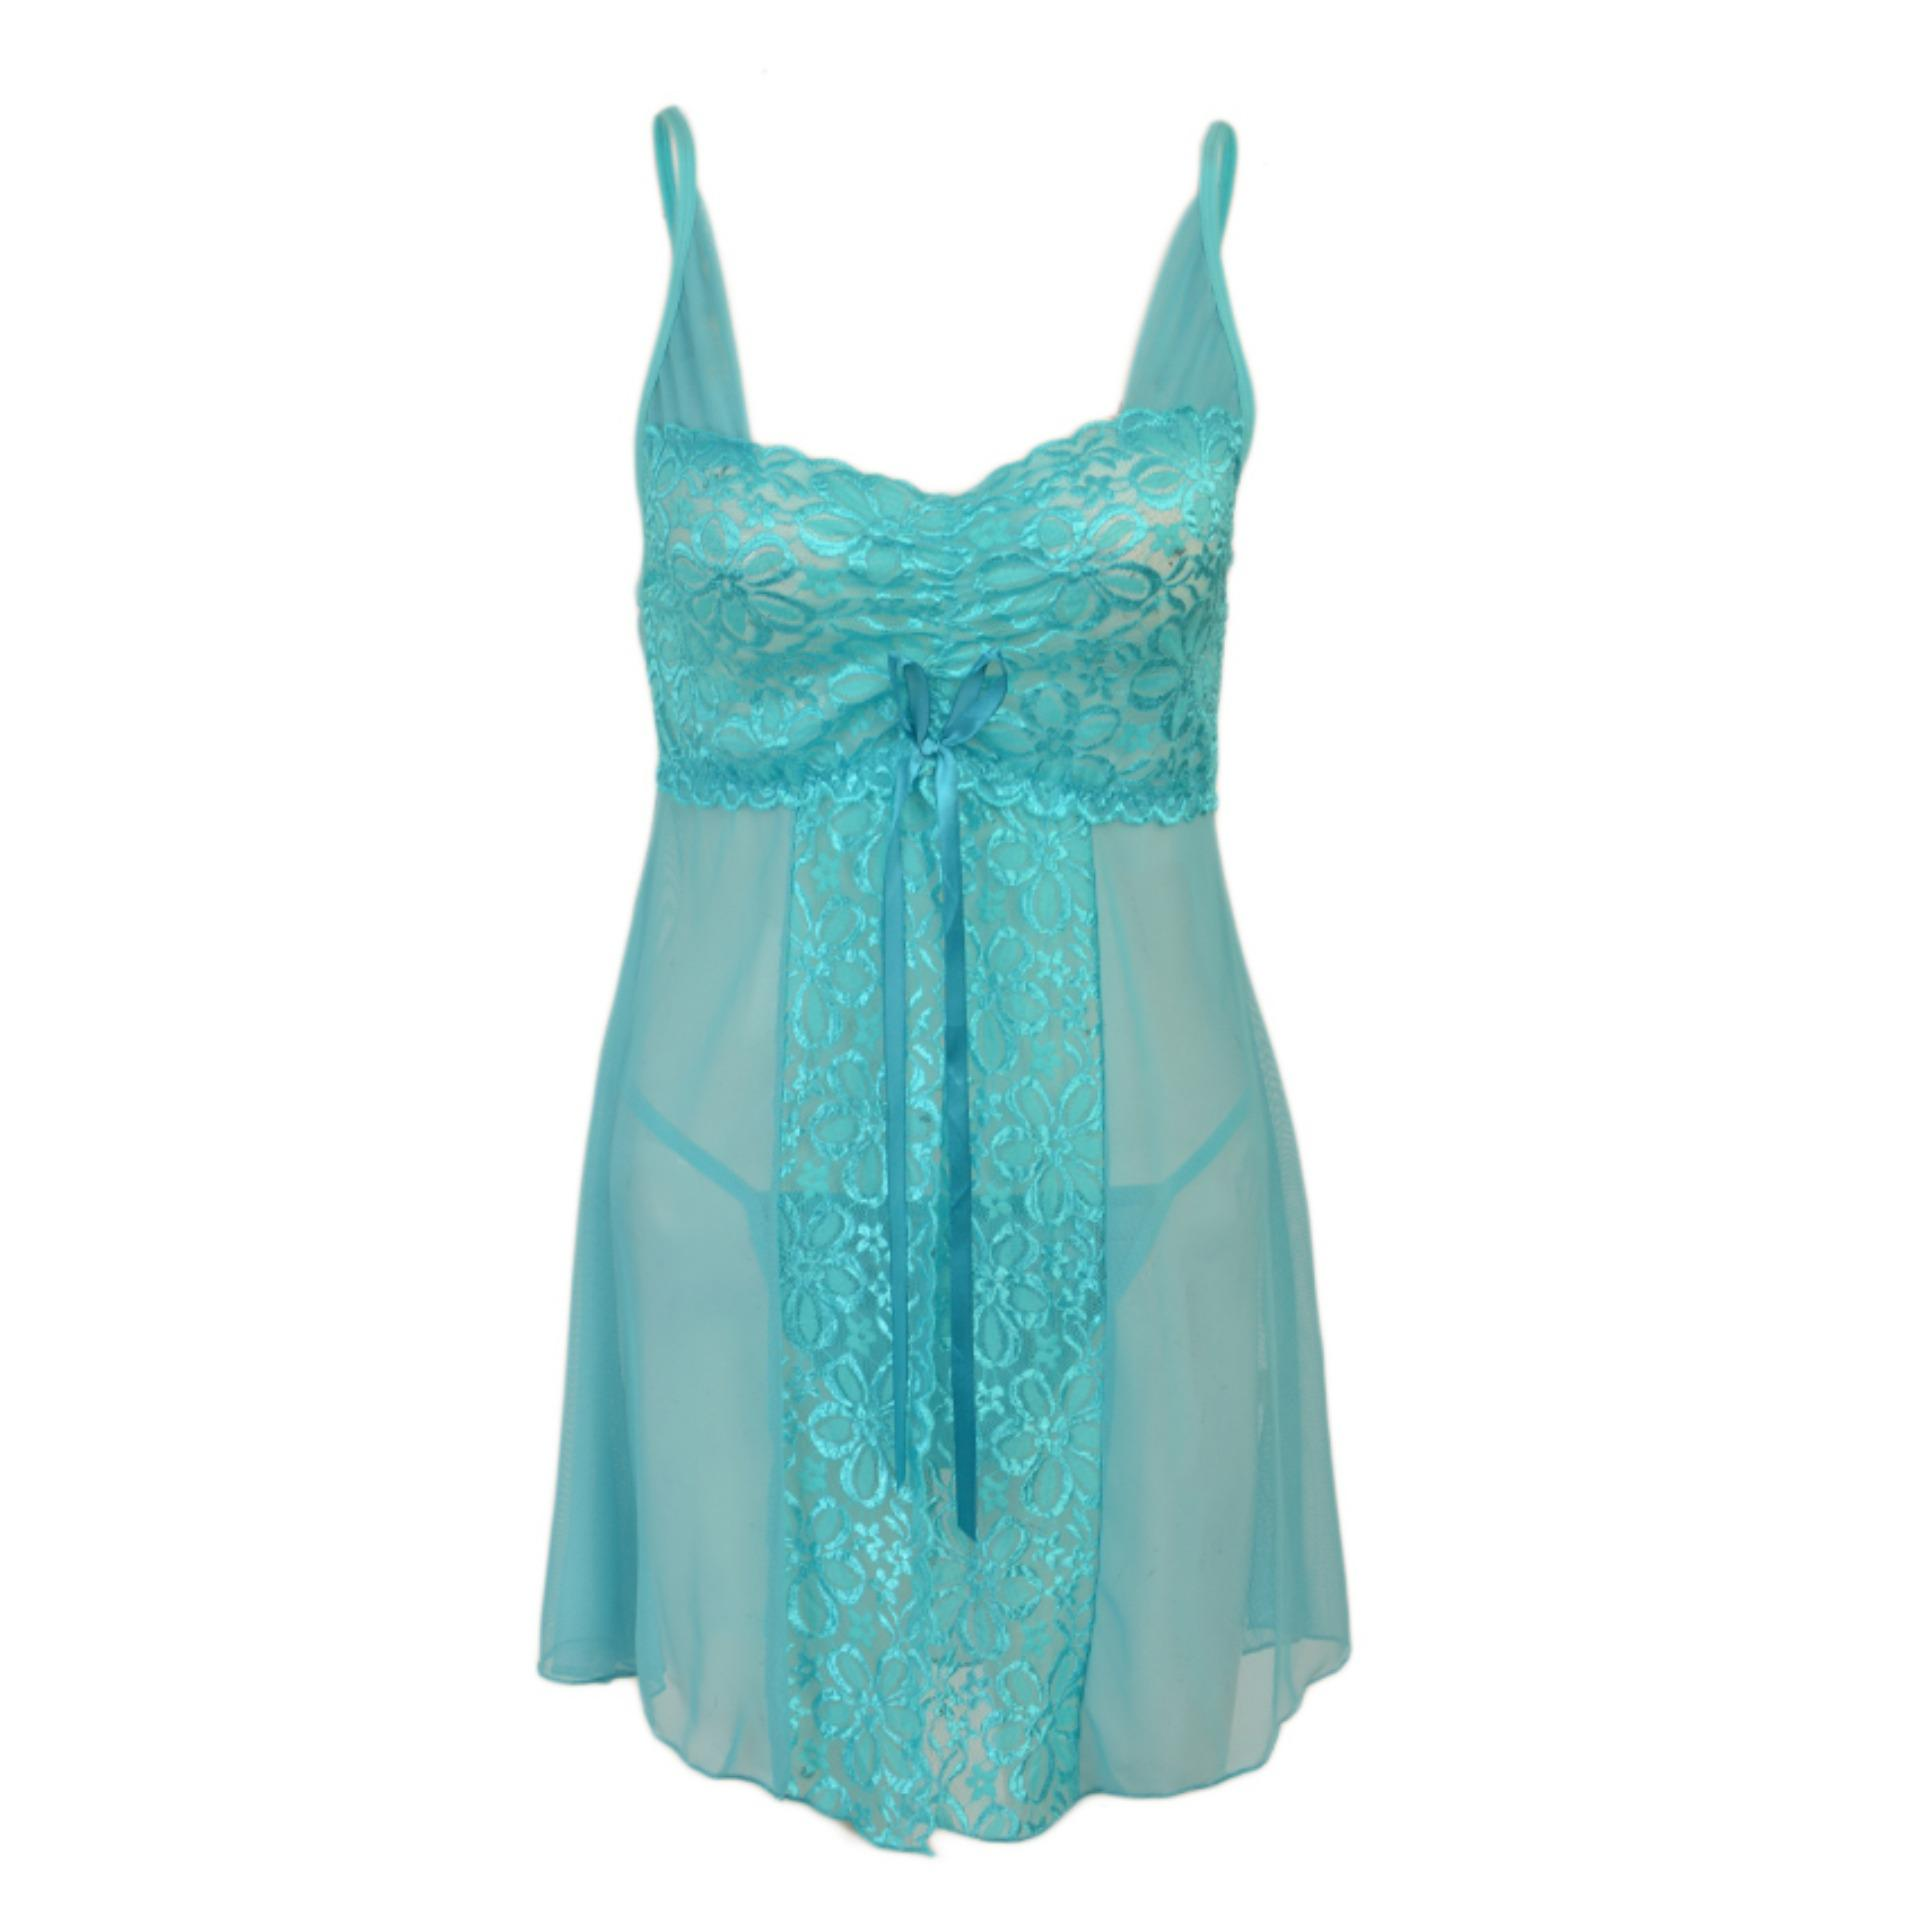 6e6184e79c70 Product details of Pack of 2 Short Front Open Floral Net Nighty and G-String  Panty for Women (Free Size) - Light Blue